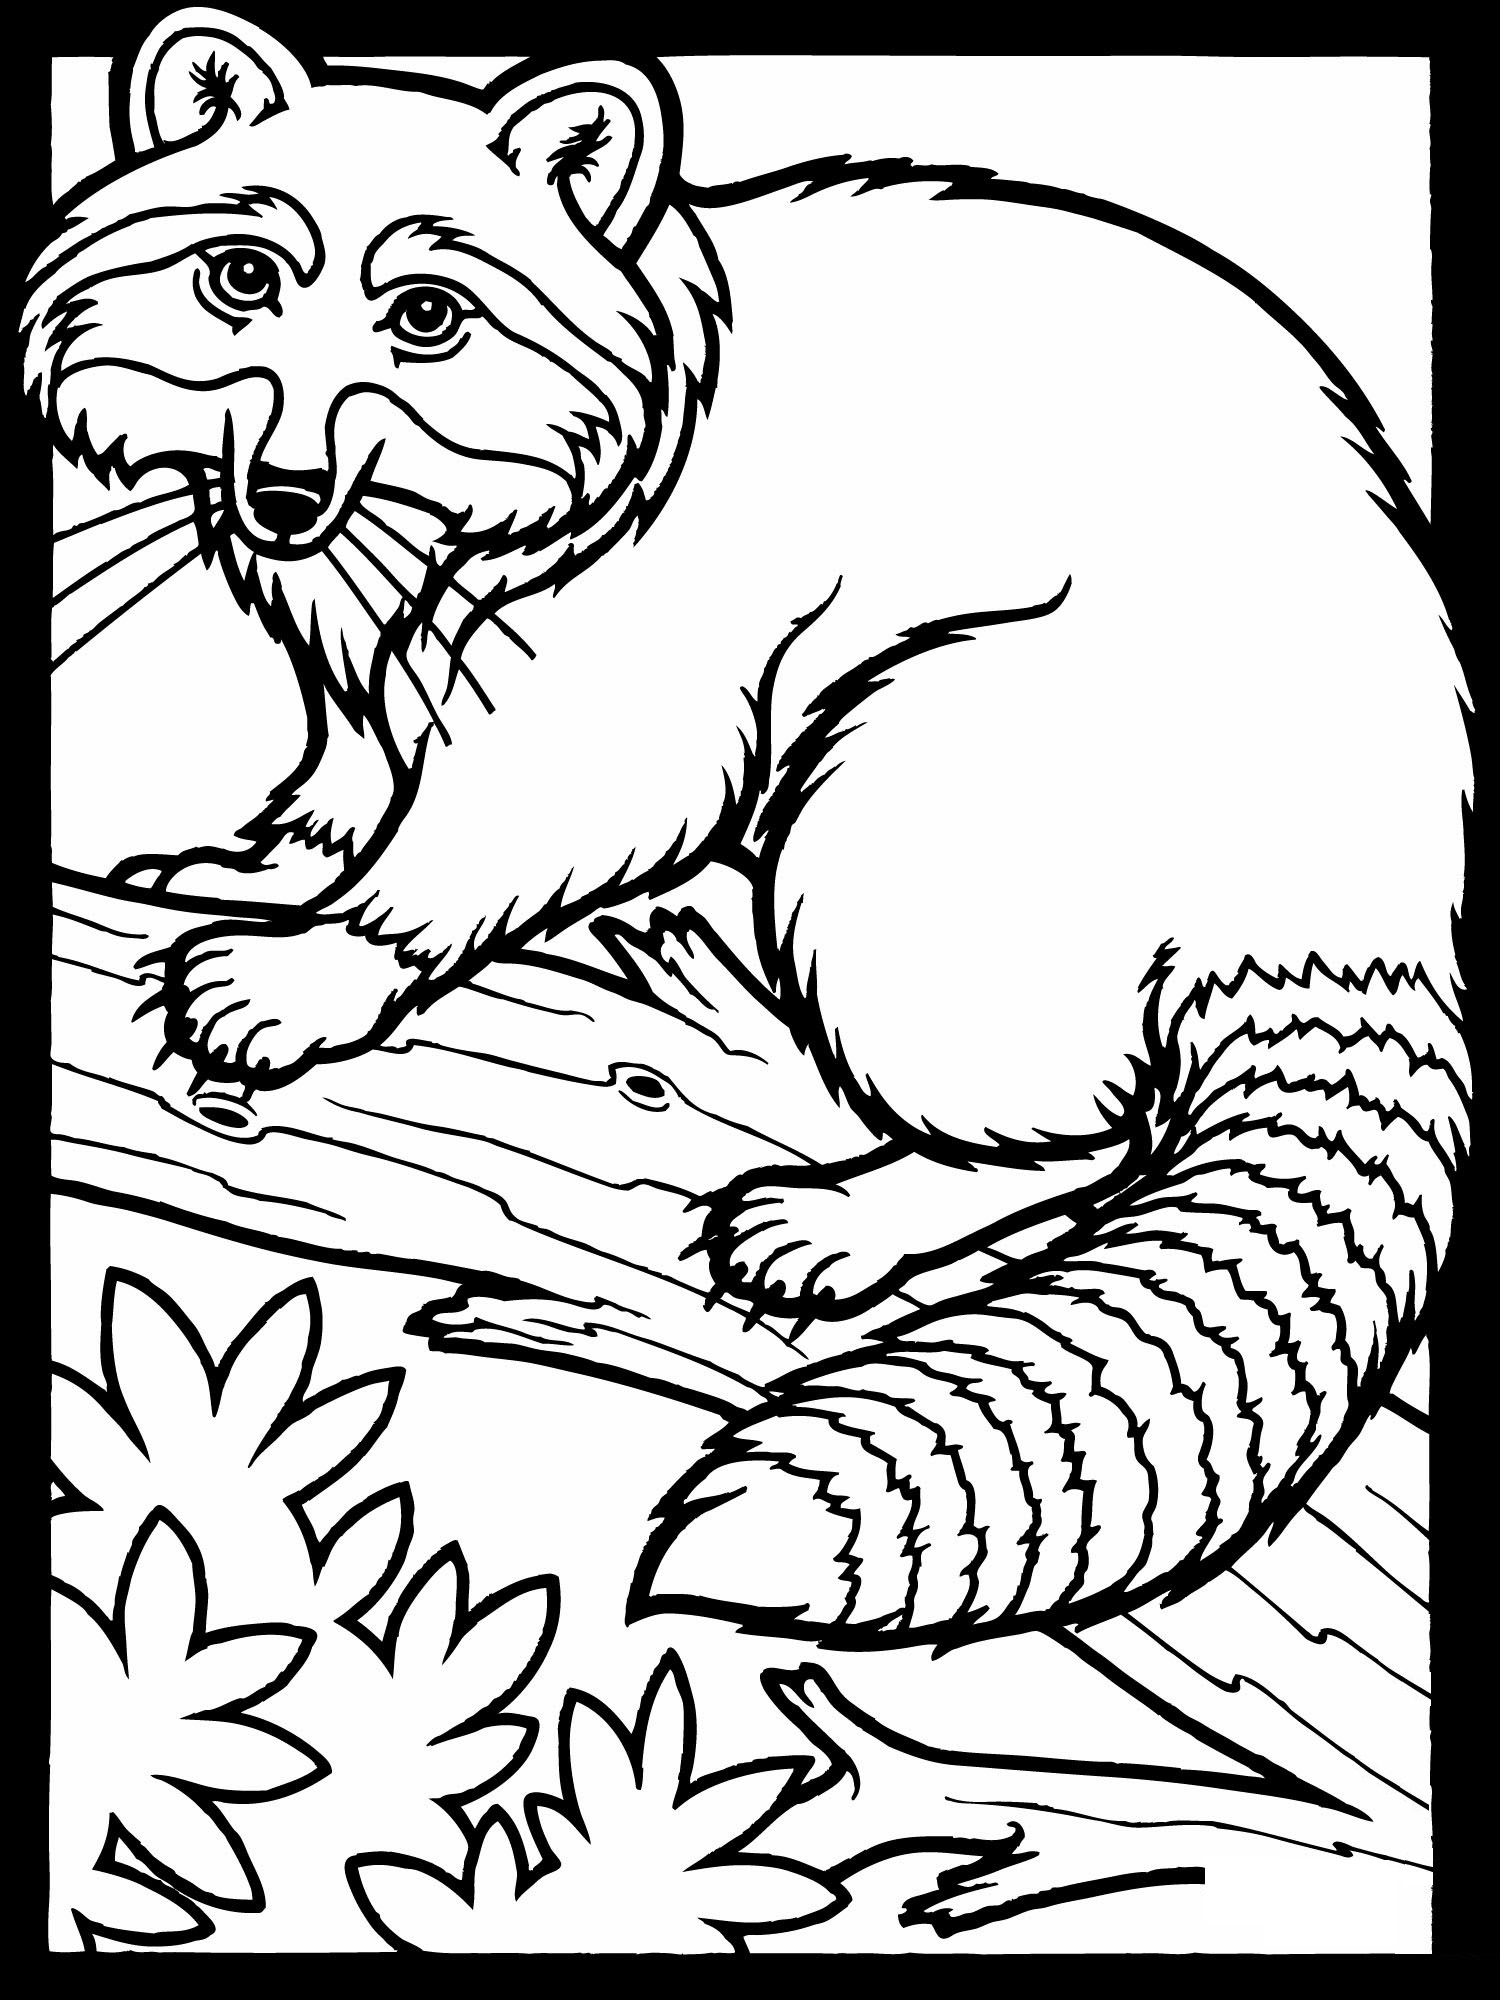 raccoon pictures to print raccoon coloring pages kidsuki print raccoon pictures to